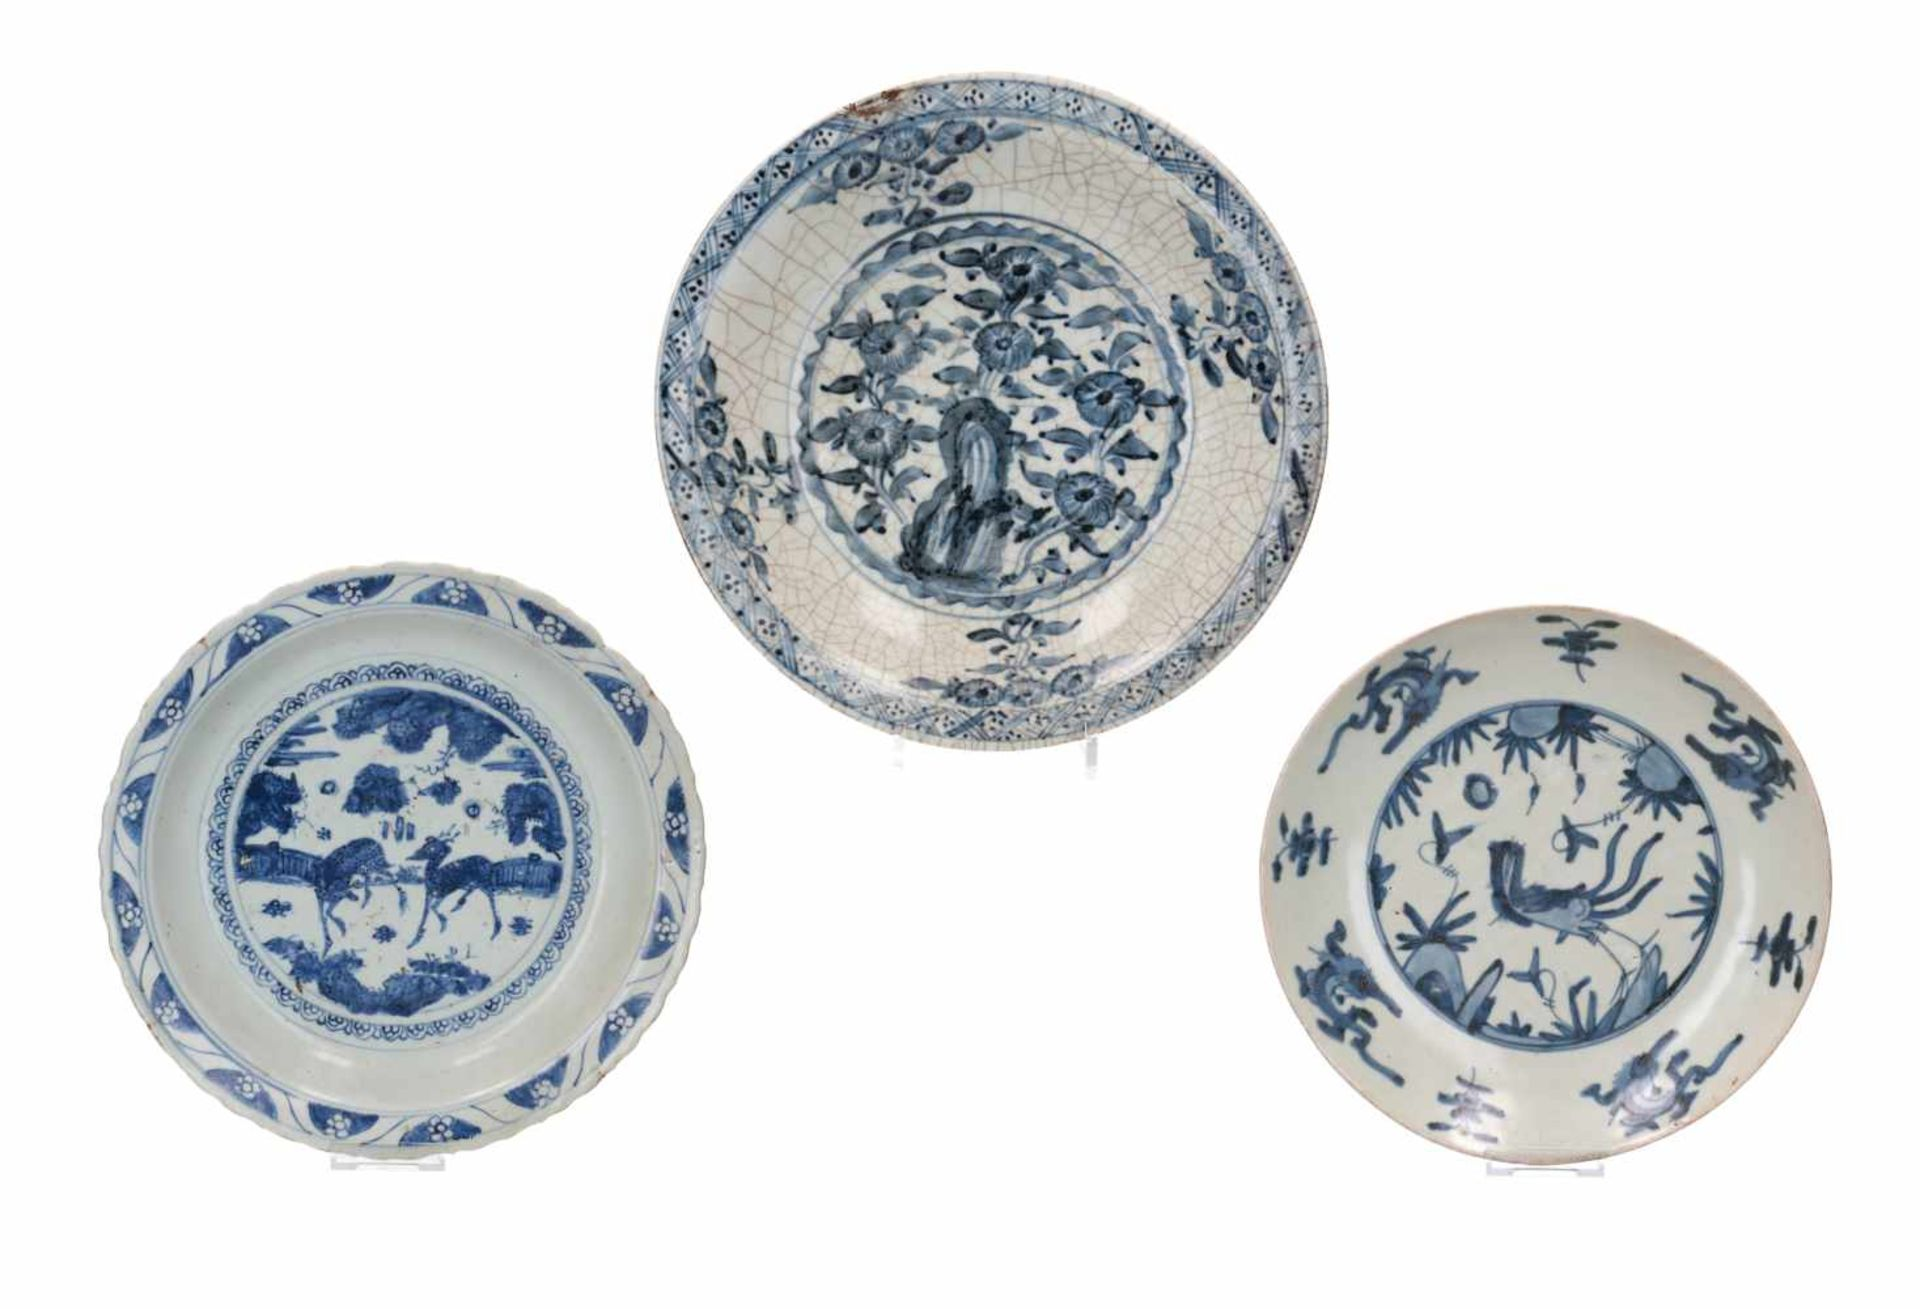 Lot of three blue and white Swatow porcelain chargers, decorated with flowers and animals. One